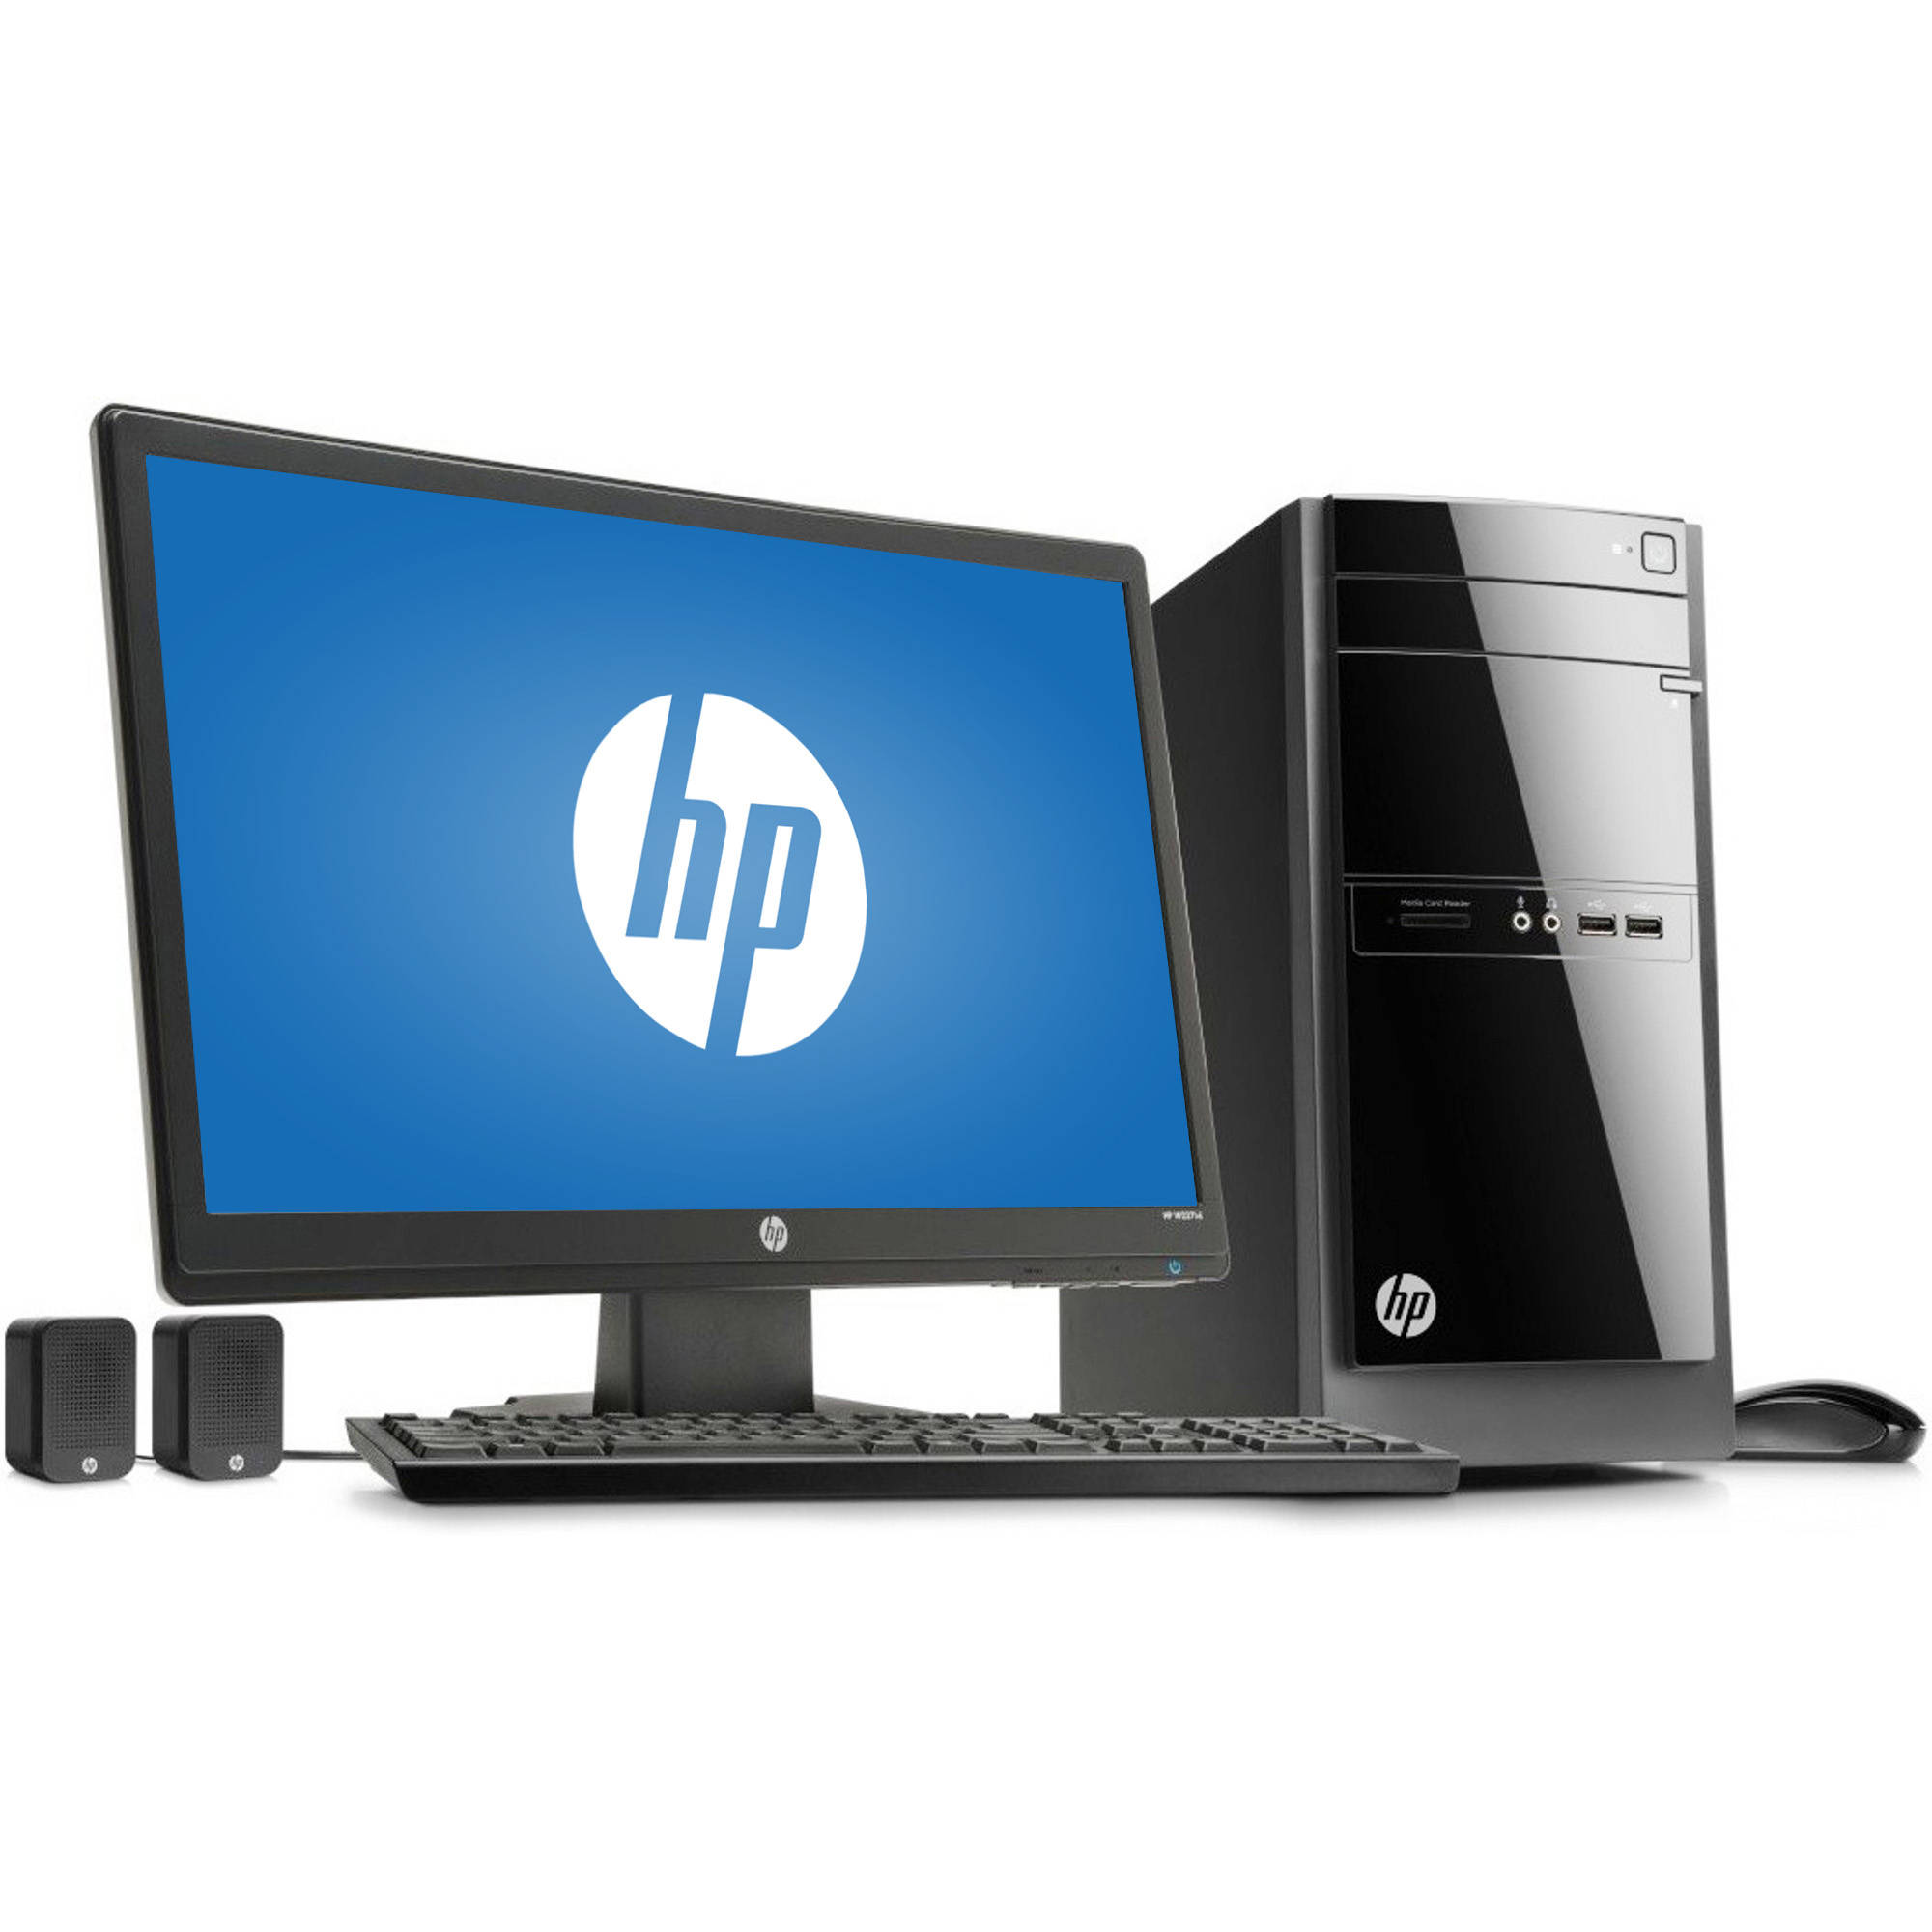 "HP 110-243wb Desktop PC with AMD A4-5000 Quad-Core Processor, 8GB Memory, 21.5"" Monitor, 1TB Hard Drive and Windows 8.1 (Free Windows 10 Upgrade before July 29, 2016)"